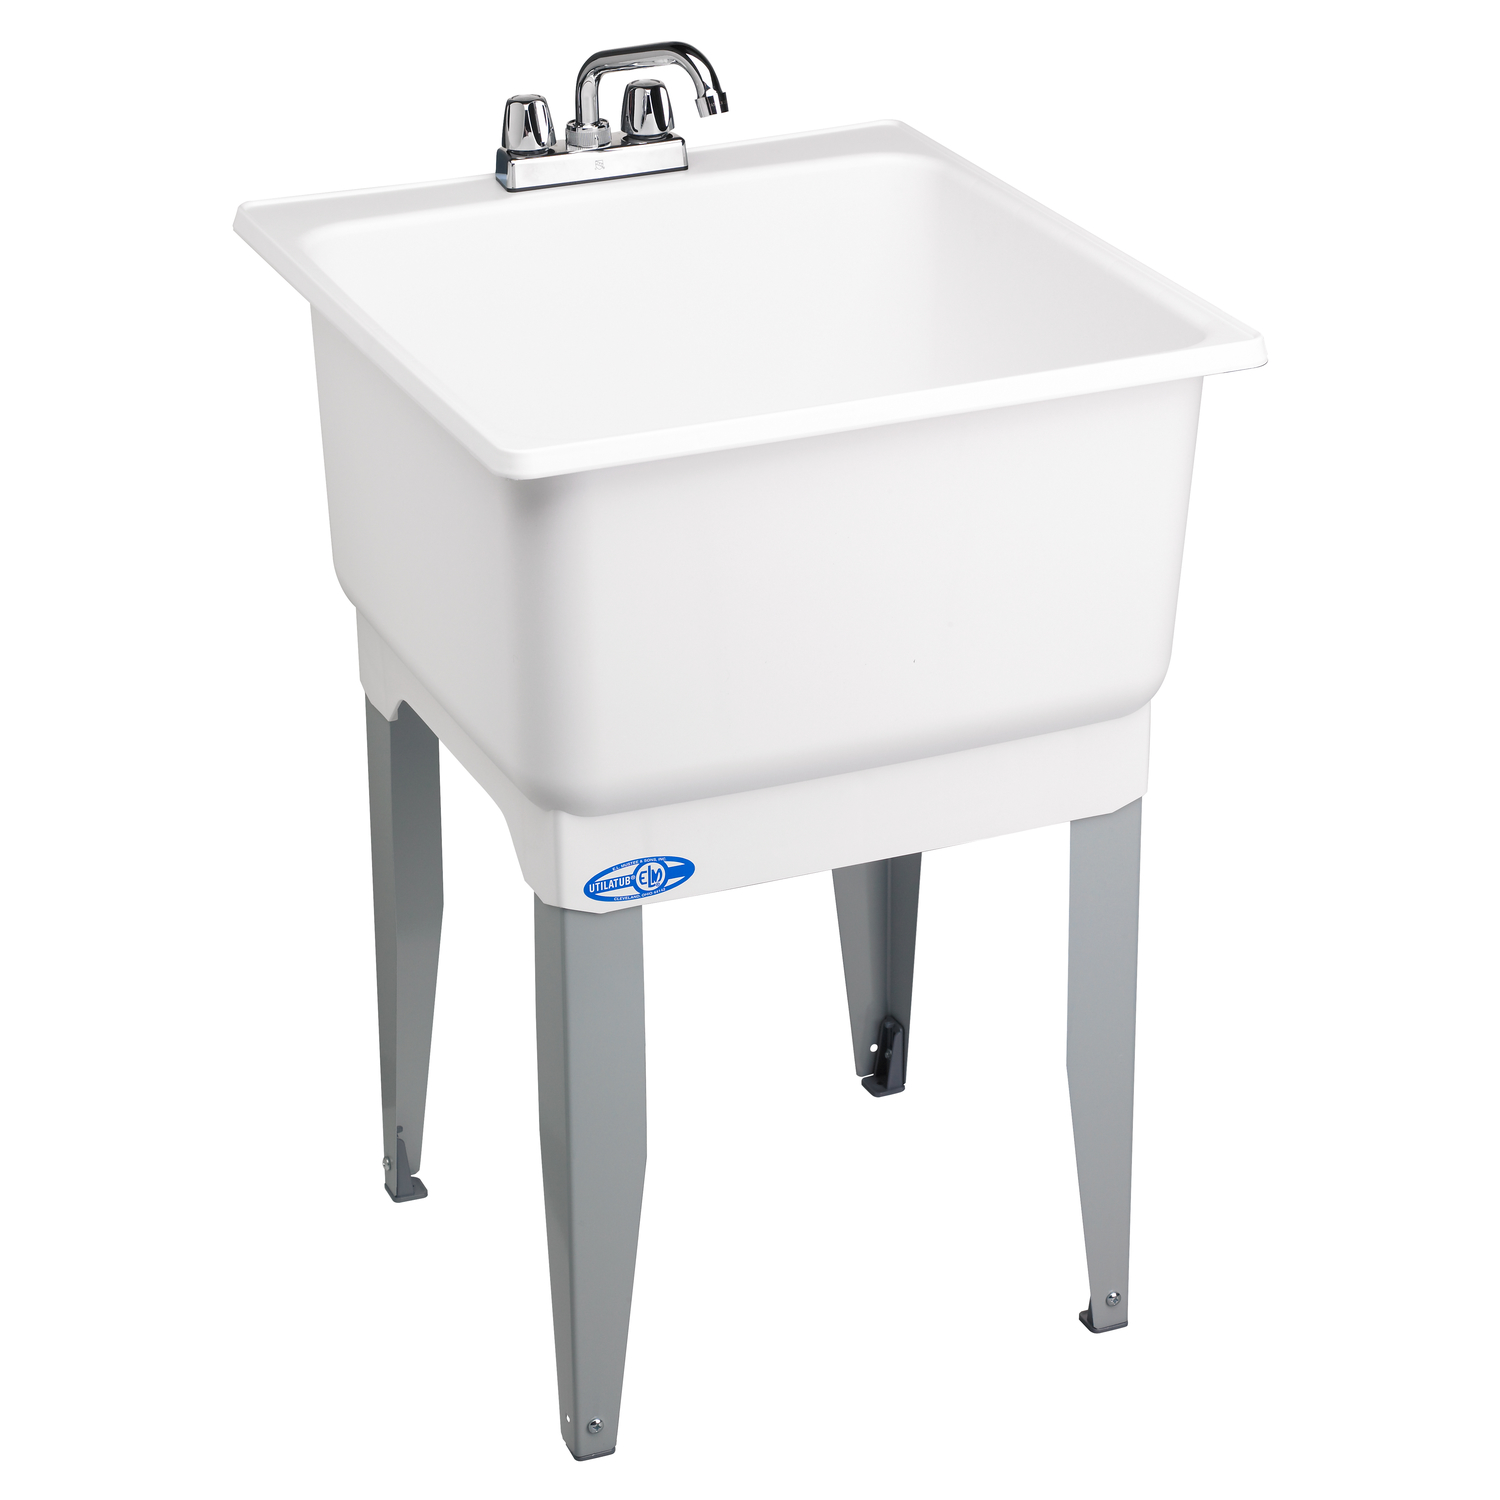 Utilatub Tub Laundry and Utility 23 in. x 25 in. x 33 in. 20 gal ...